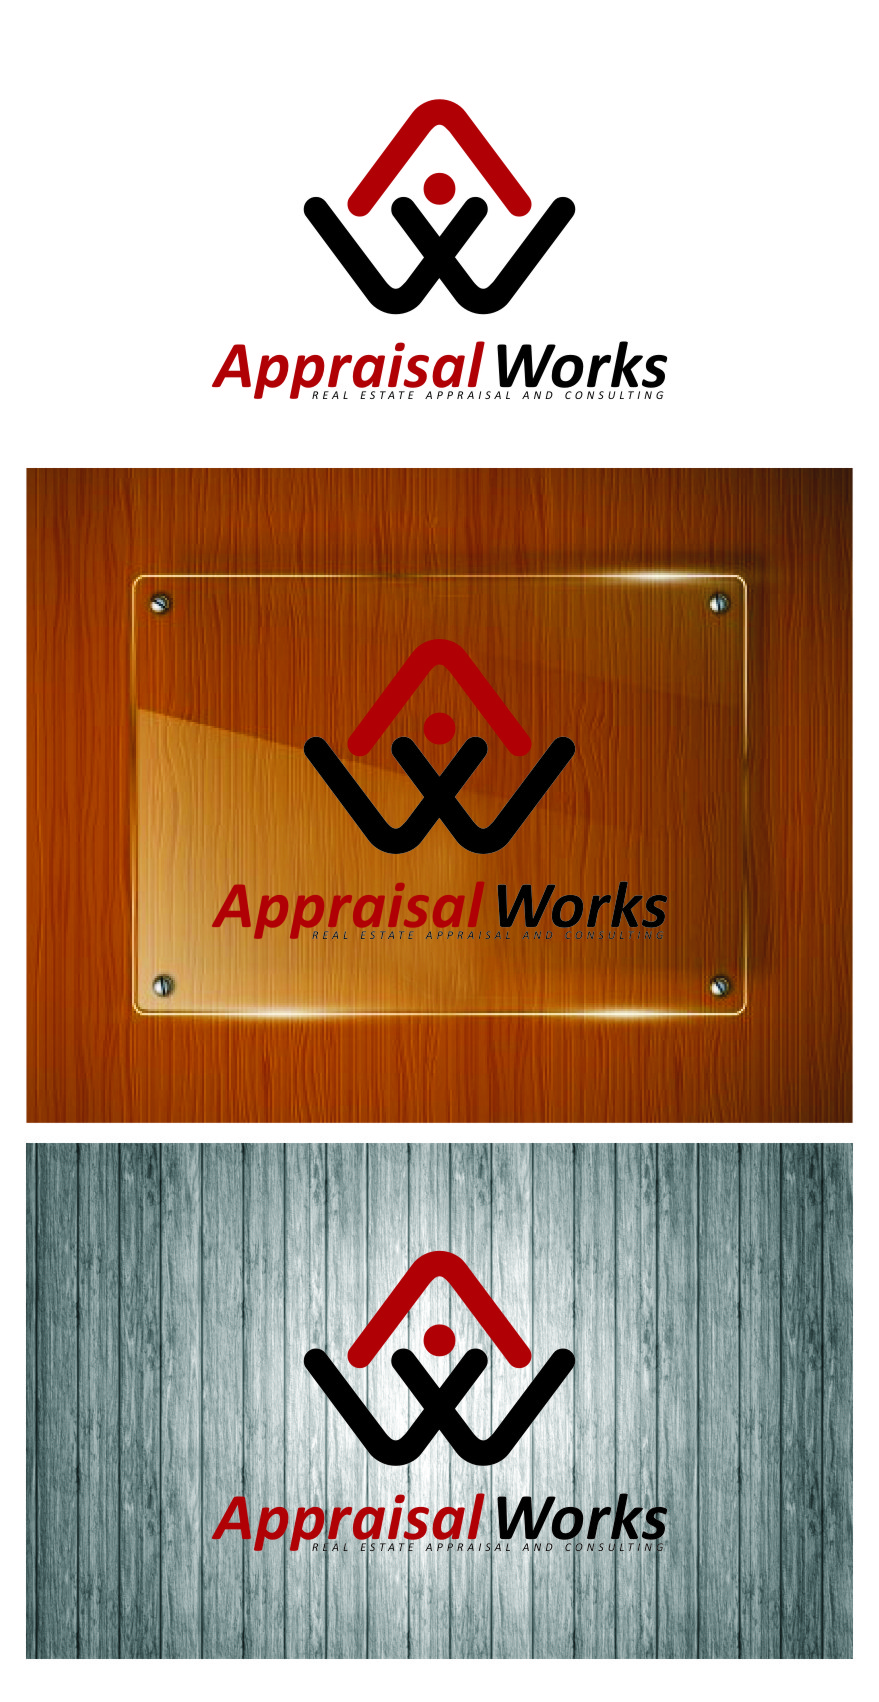 Logo Design by Ngepet_art - Entry No. 195 in the Logo Design Contest Appraisal Works Logo Design.